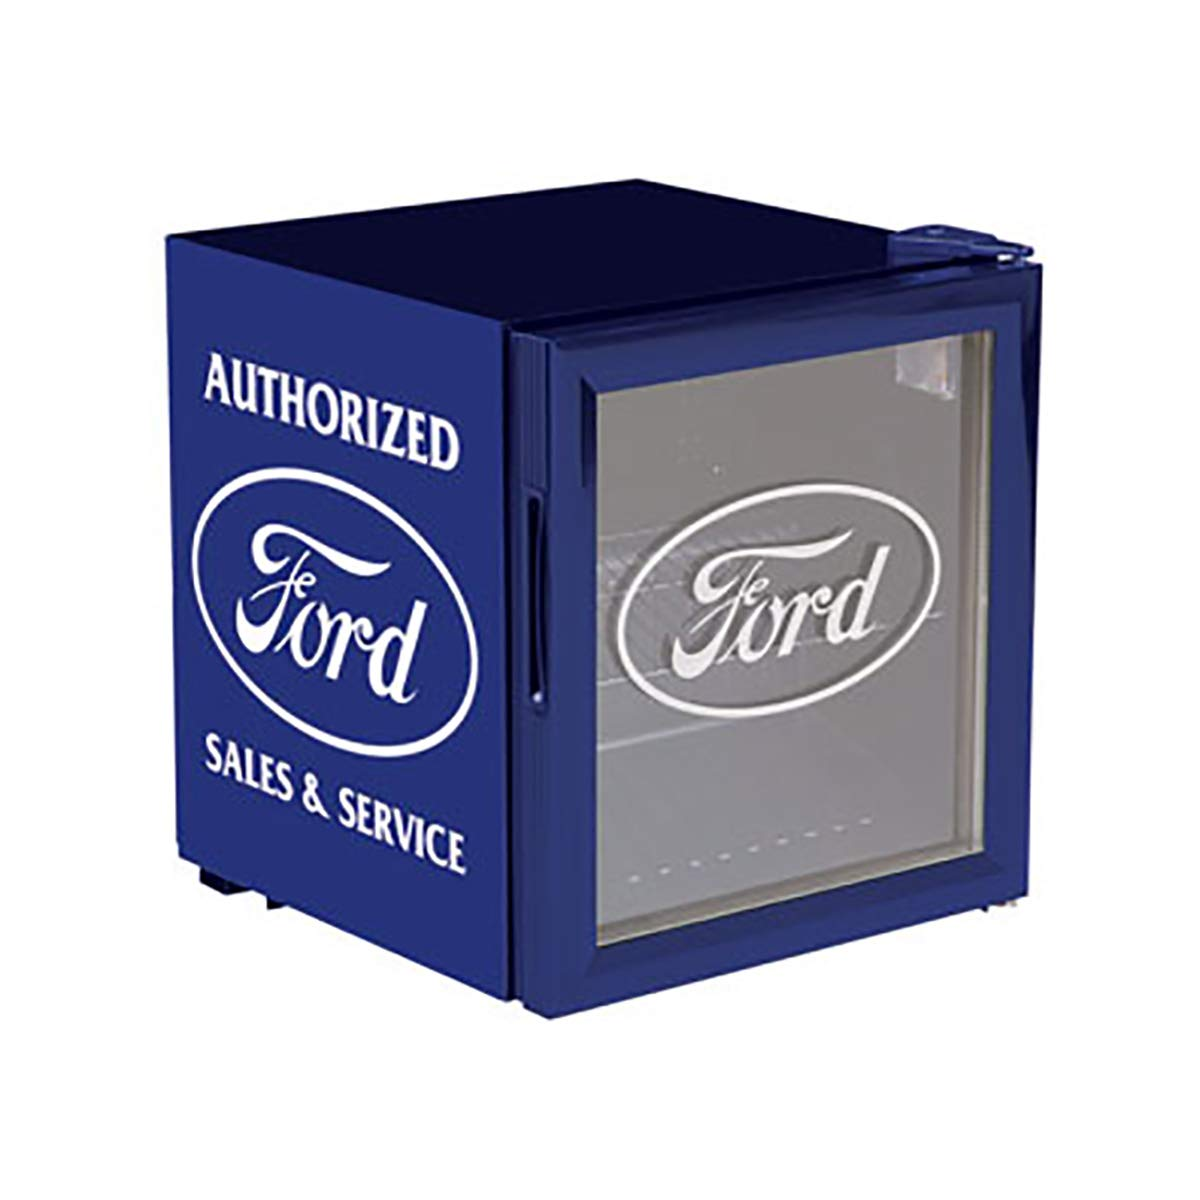 Classic Ford Beverage Cooler - Blue